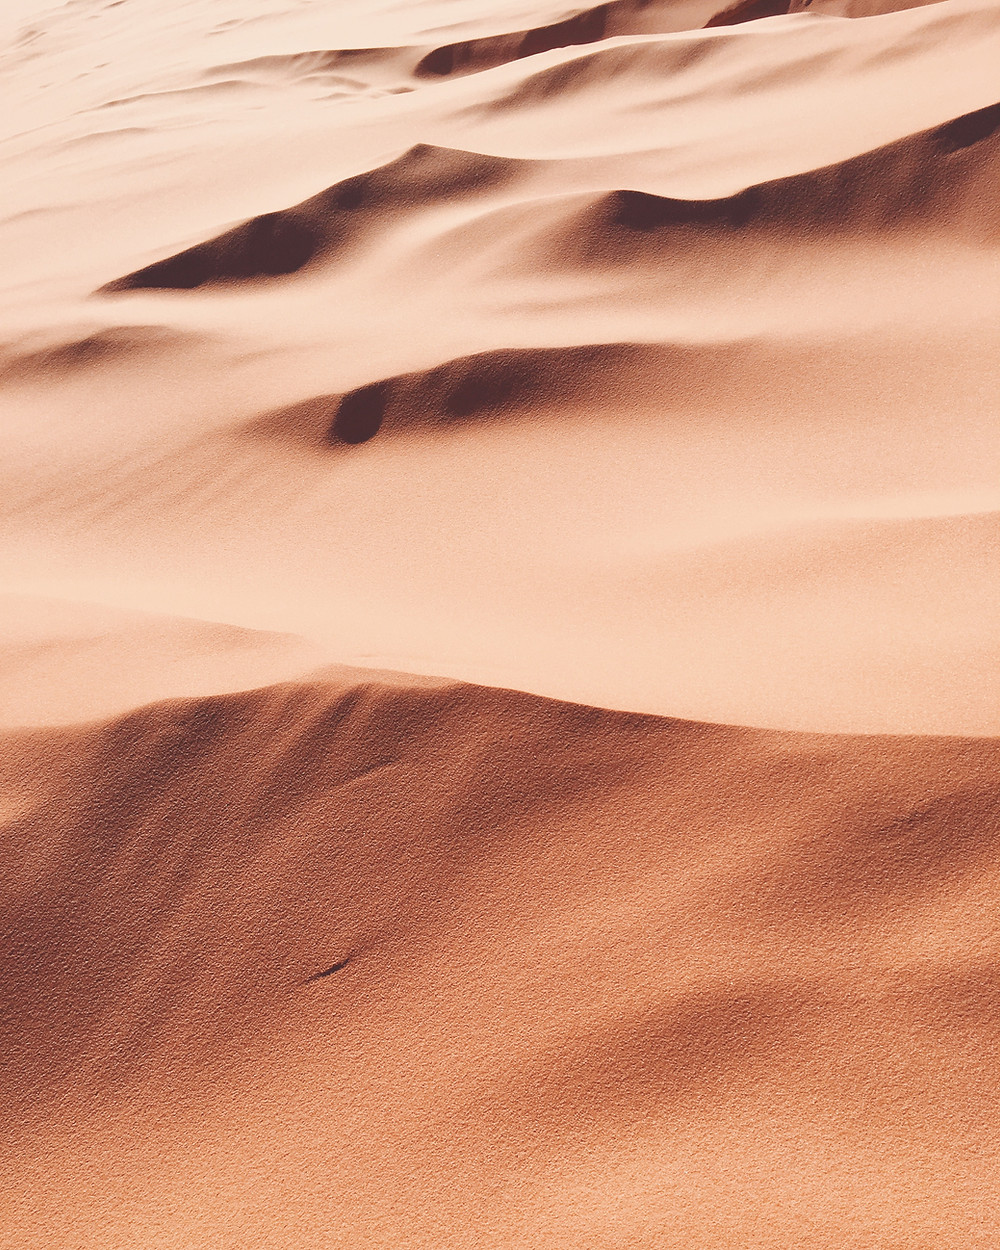 choose neutral palettes like these dunes for all of your undergarments in order to always look put together